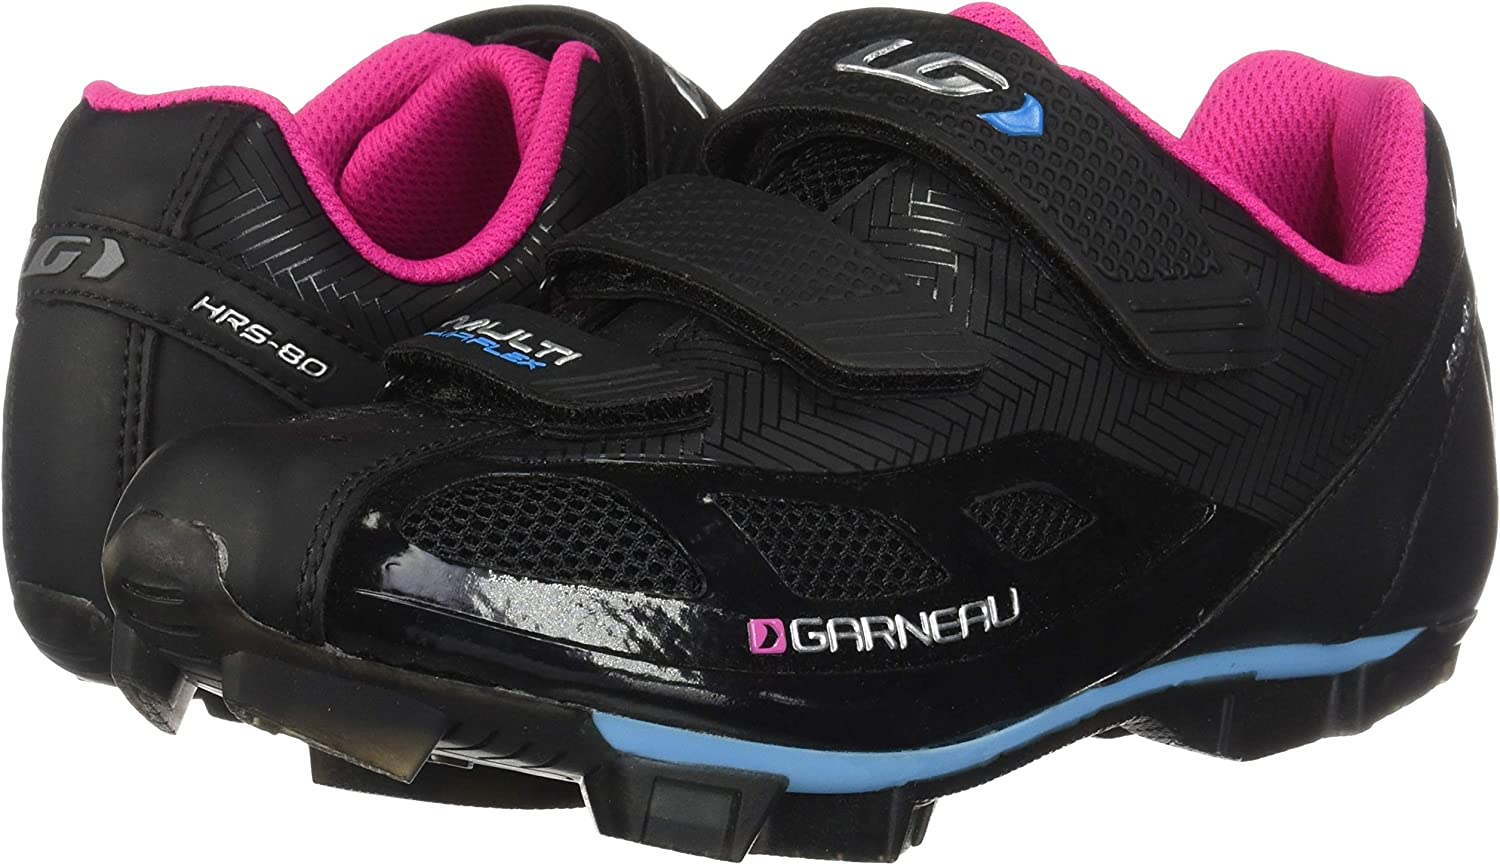 Womens Multi Air Flex Bike Shoes for Indoor Cycling Commuting and MTB SPD Cleats Compatible with MTB Pedals Louis Garneau